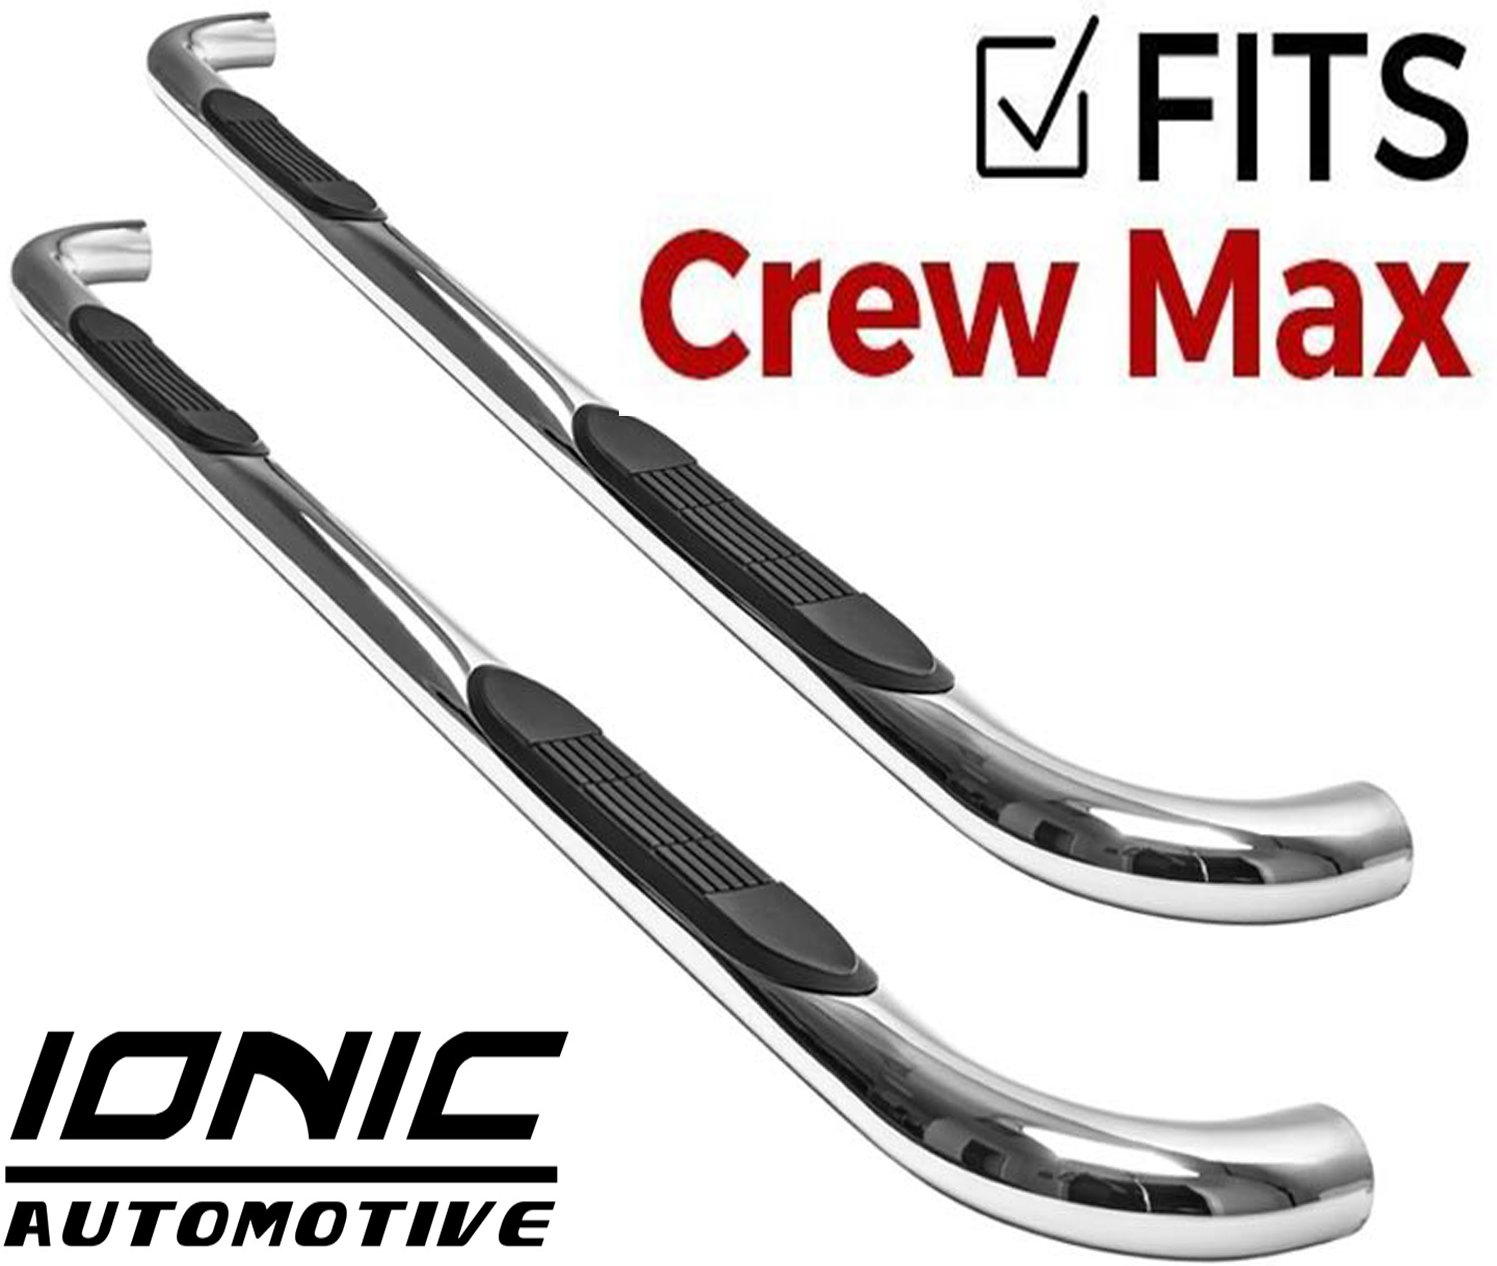 fits Ionic 3 Stainless 233127 2007-2018 Toyota Tundra CrewMax Only Nerf Bars Side Steps